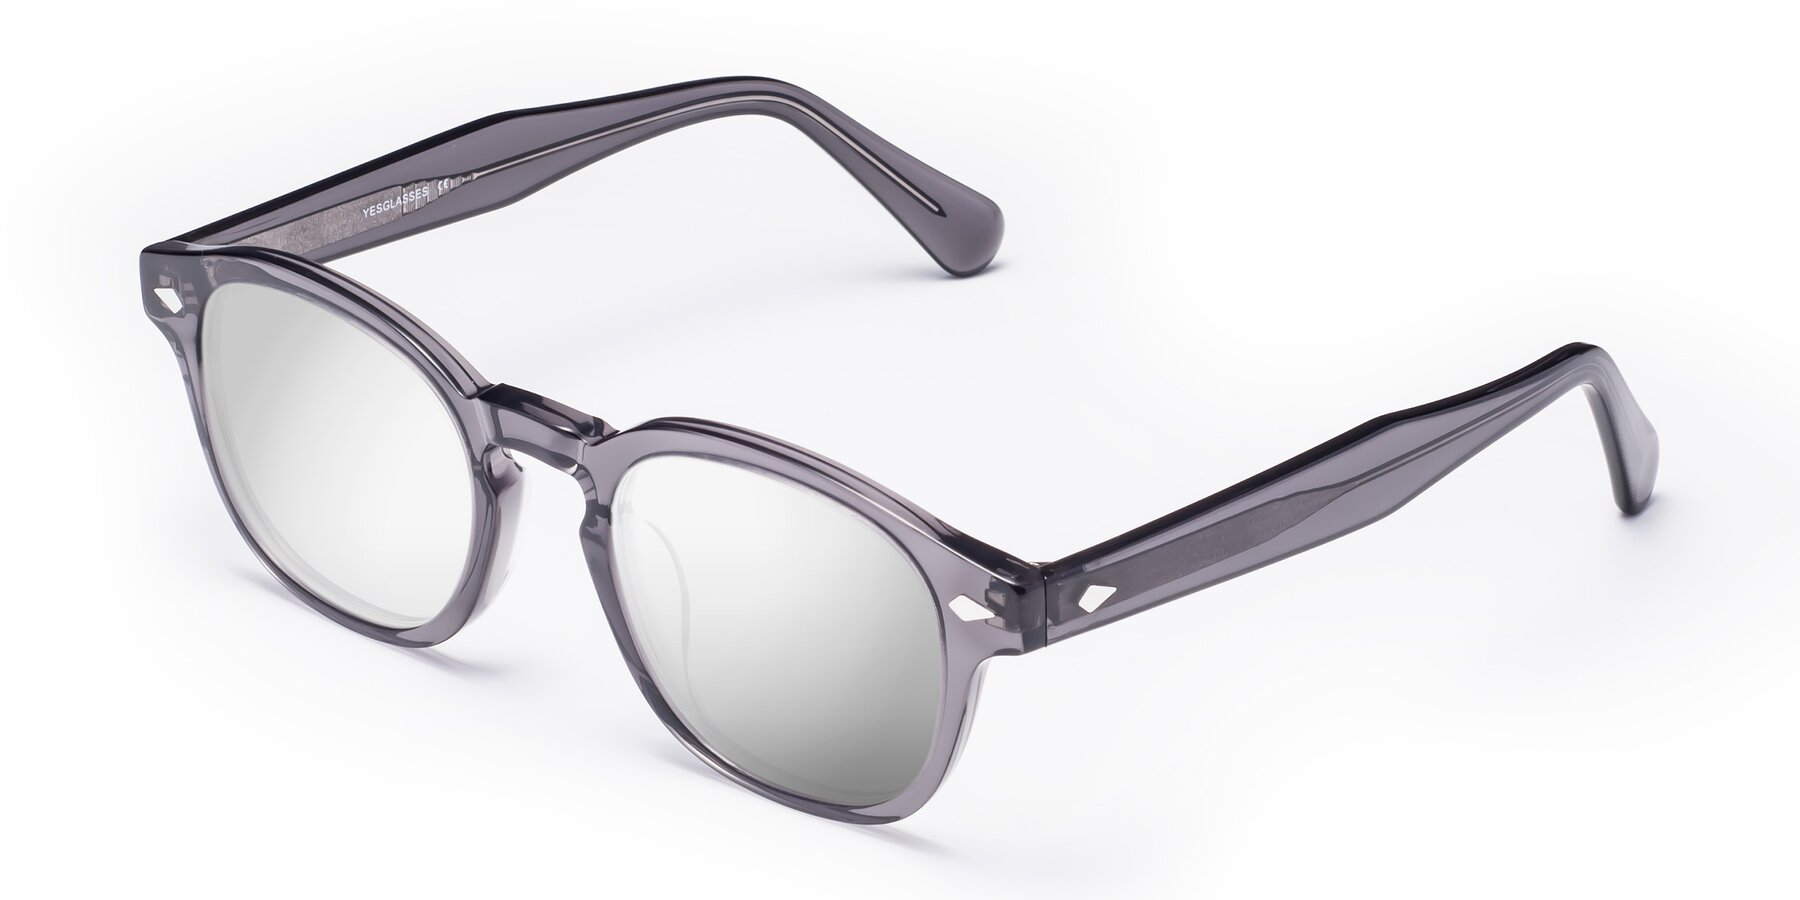 Angle of WALL-E in Translucent Gray with Silver Mirrored Lenses